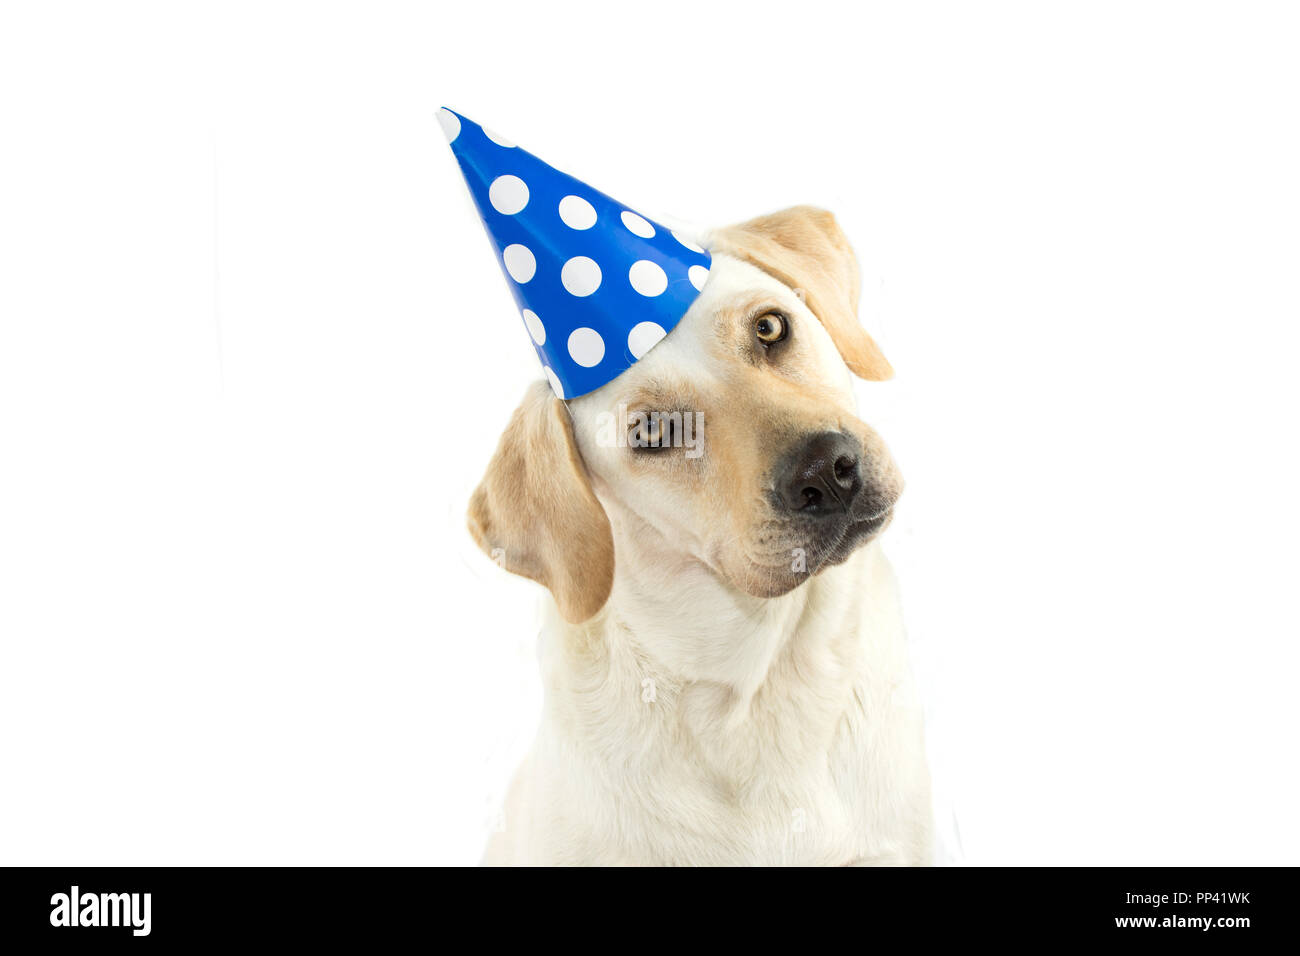 CUTE DOG CELEBRATING A BIRTHDAY PARTY TINTING THE HEAD SIDE AND LOOKING AT CAMERA WEARING BLUE POLKA DOT HAT ISOLATED AGAINST WHITE BACKGROUND C